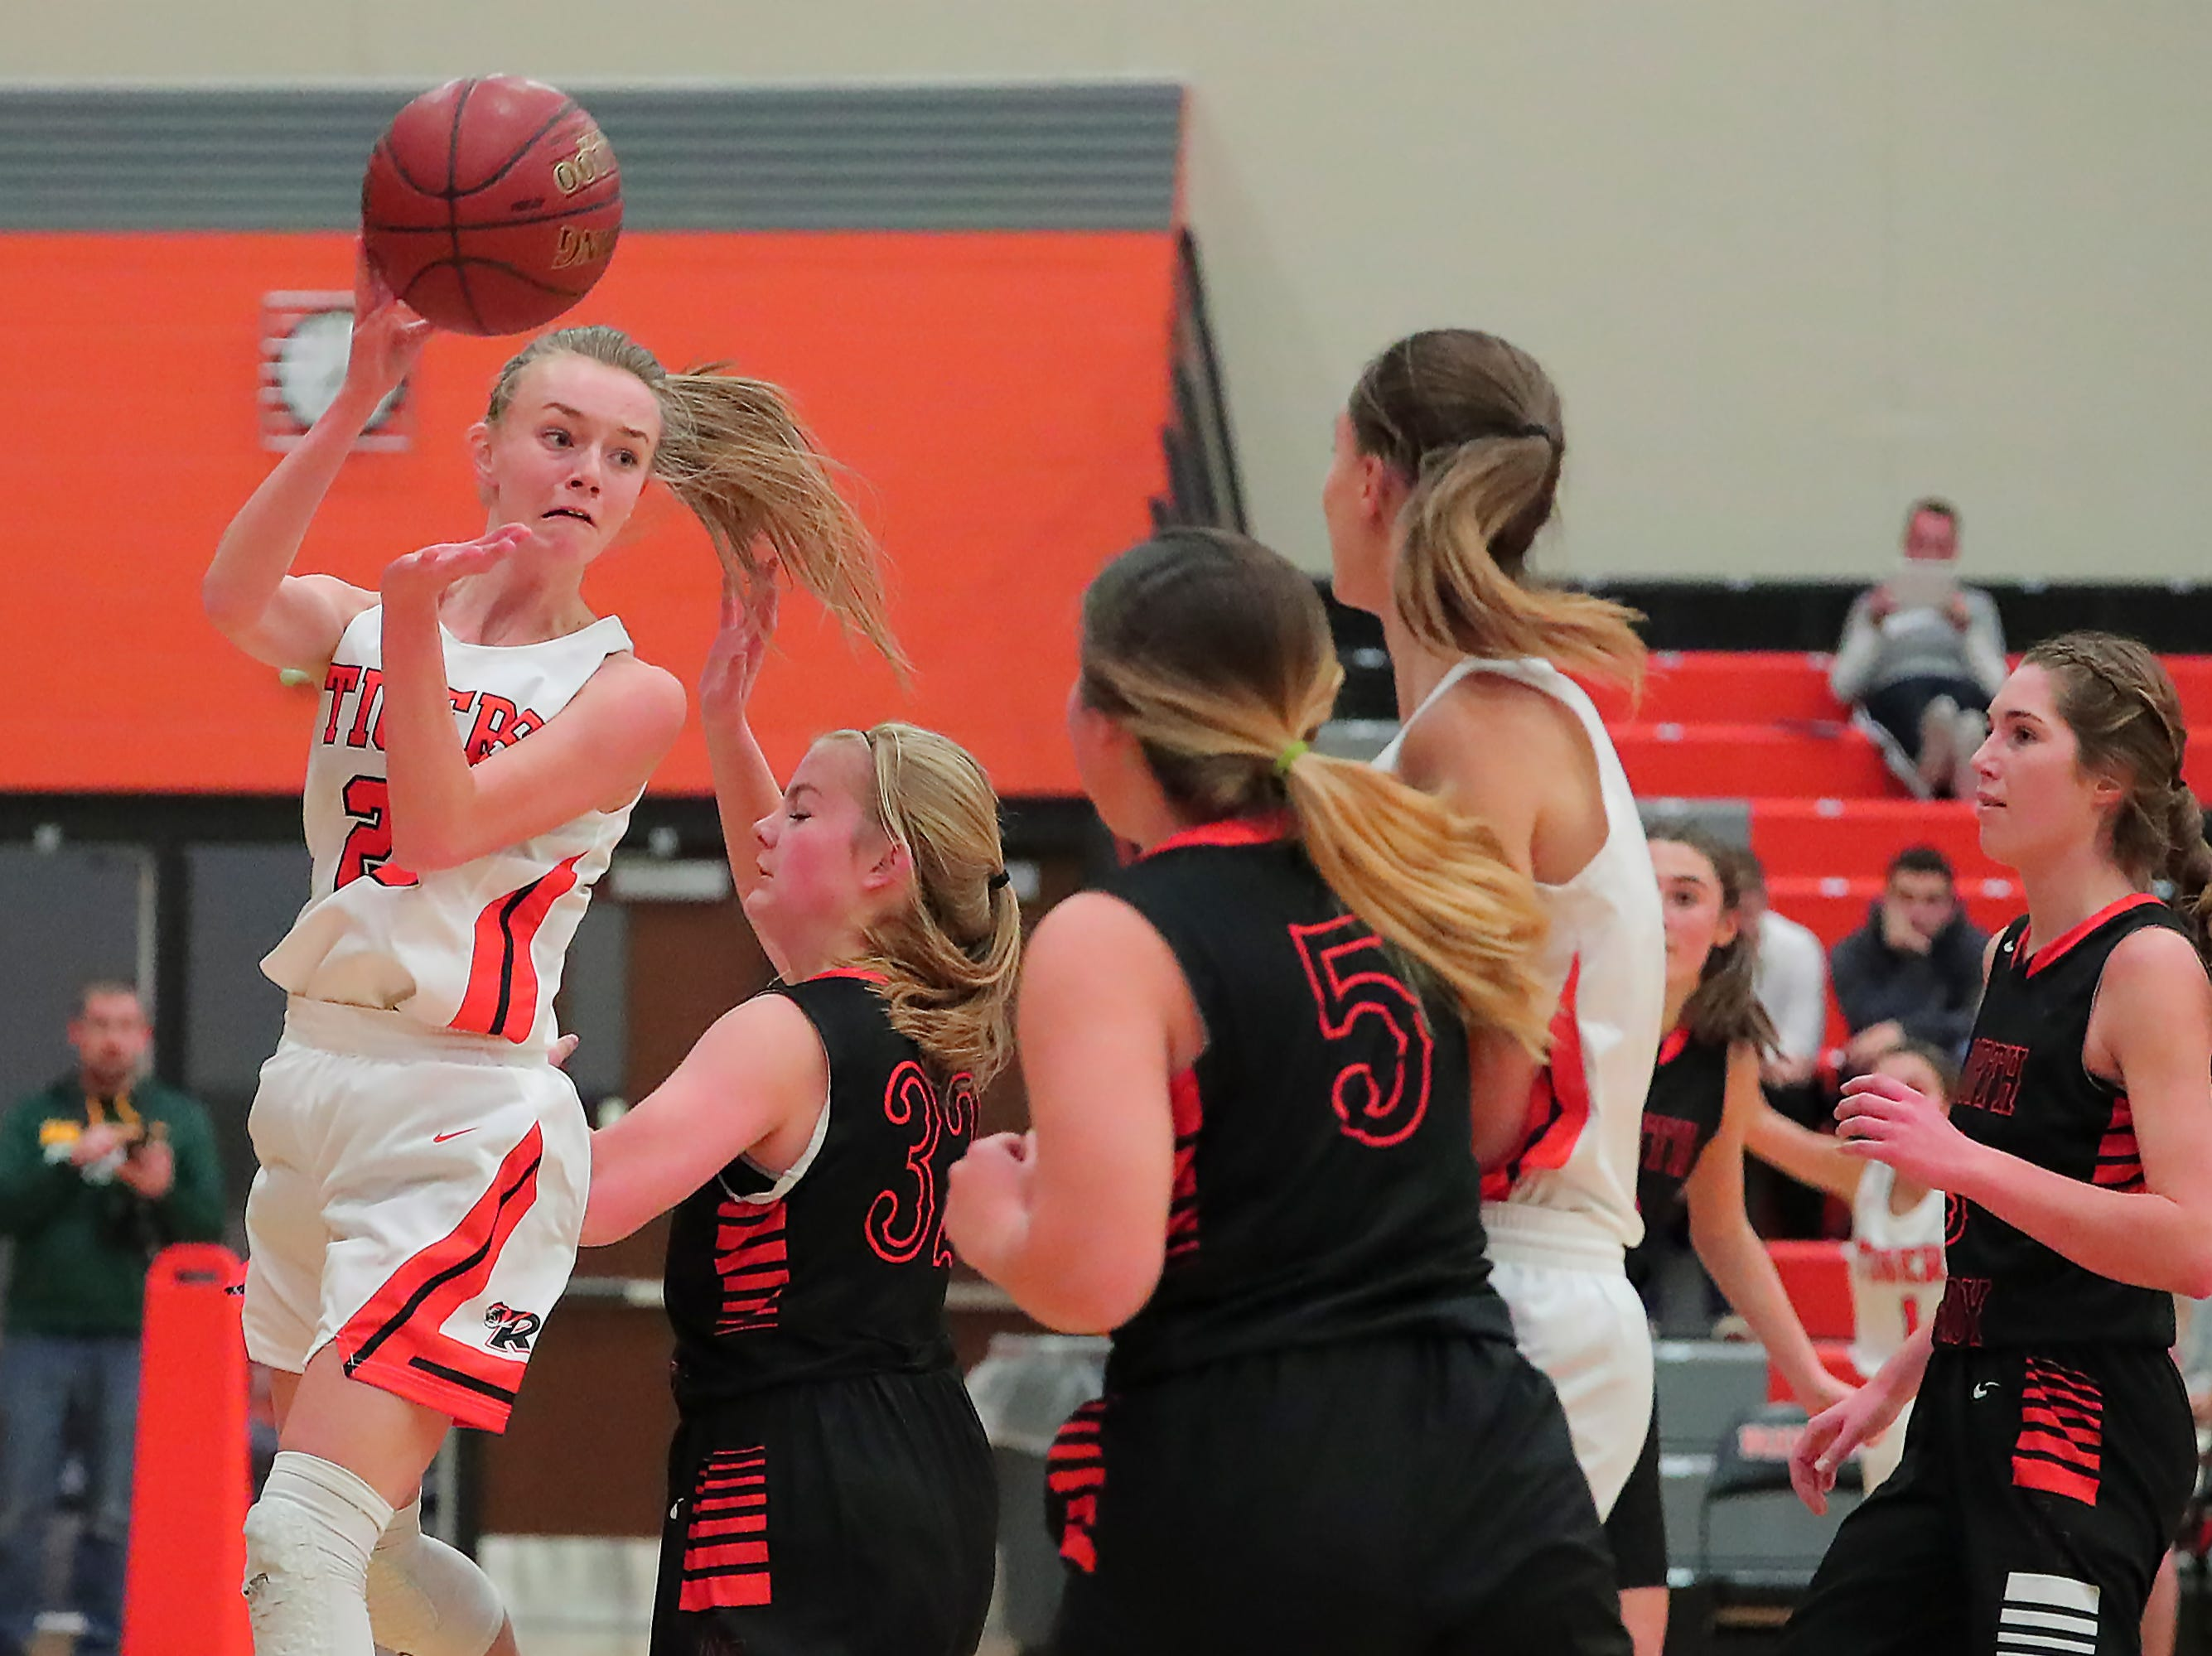 Kerstin Sauerbrei (23) of Ripon passes the ball to Lexi Miller (11) in the first half. The Ripon Tigers hosted the North Fond du Lac Orioles in a non-conference basketball game Thursday evening, November 15, 2018.